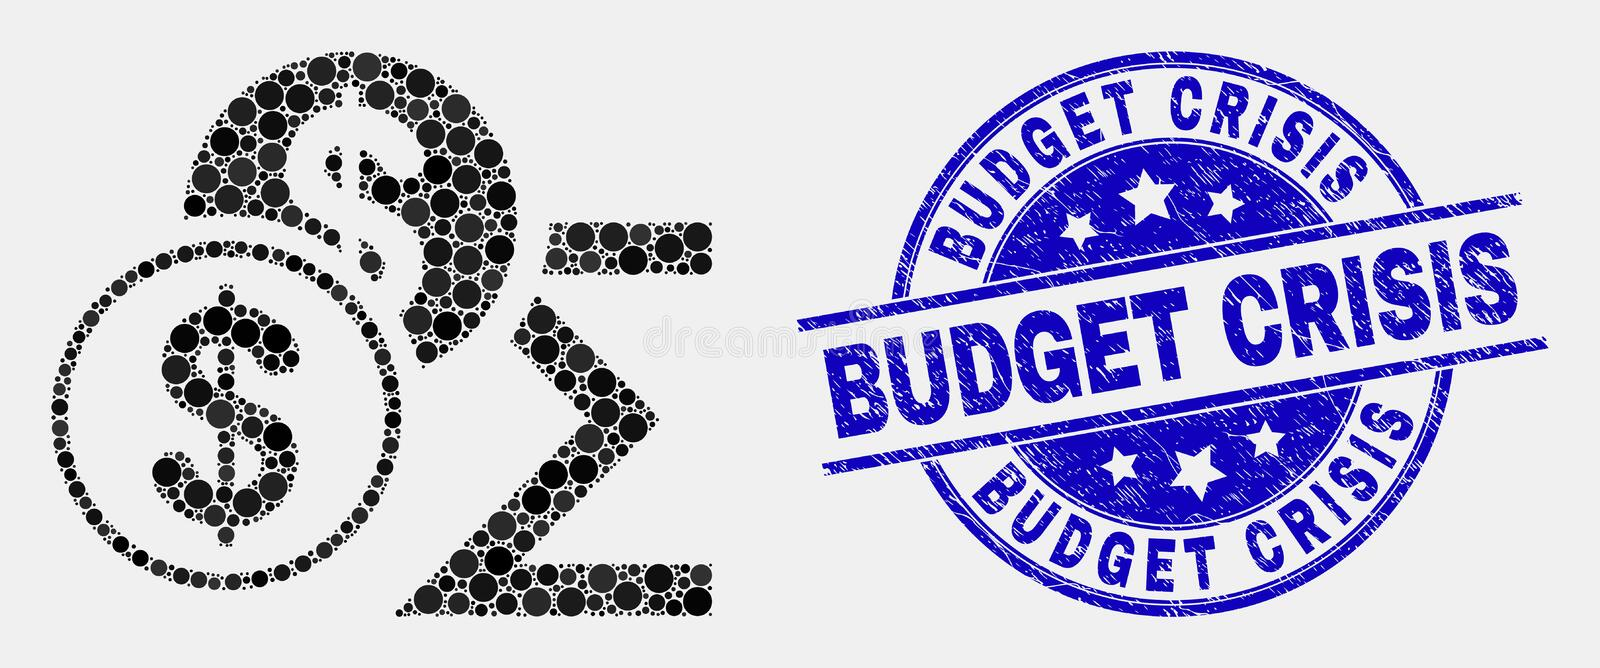 Vector Pixel Dollar Sum Icon and Distress Budget Crisis Seal stock illustration